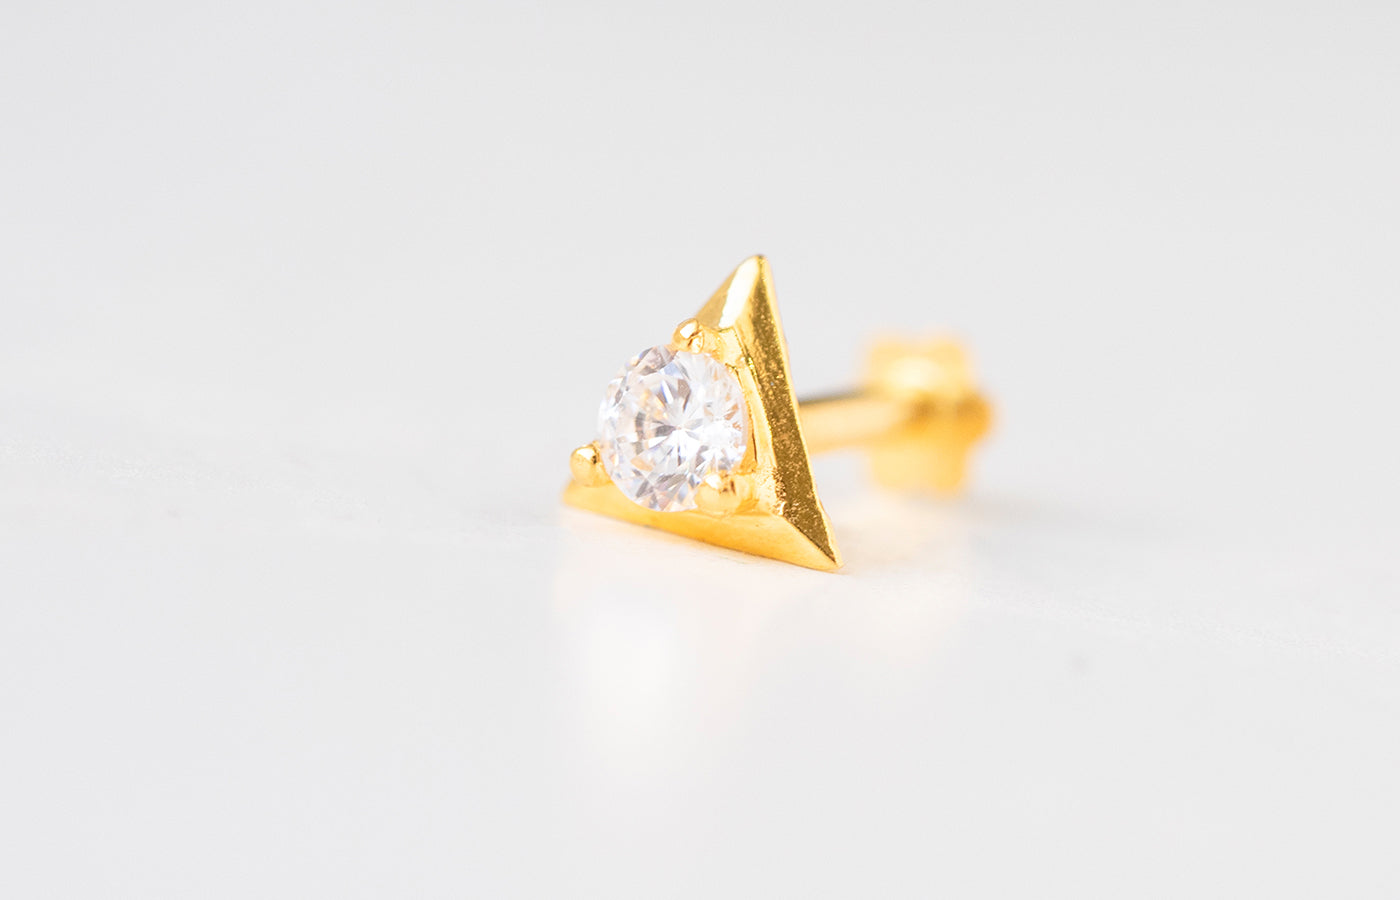 18ct Yellow Gold Screw Back Nose Stud set with a Cubic Zirconia in a triangular shaped setting NIP-5-770